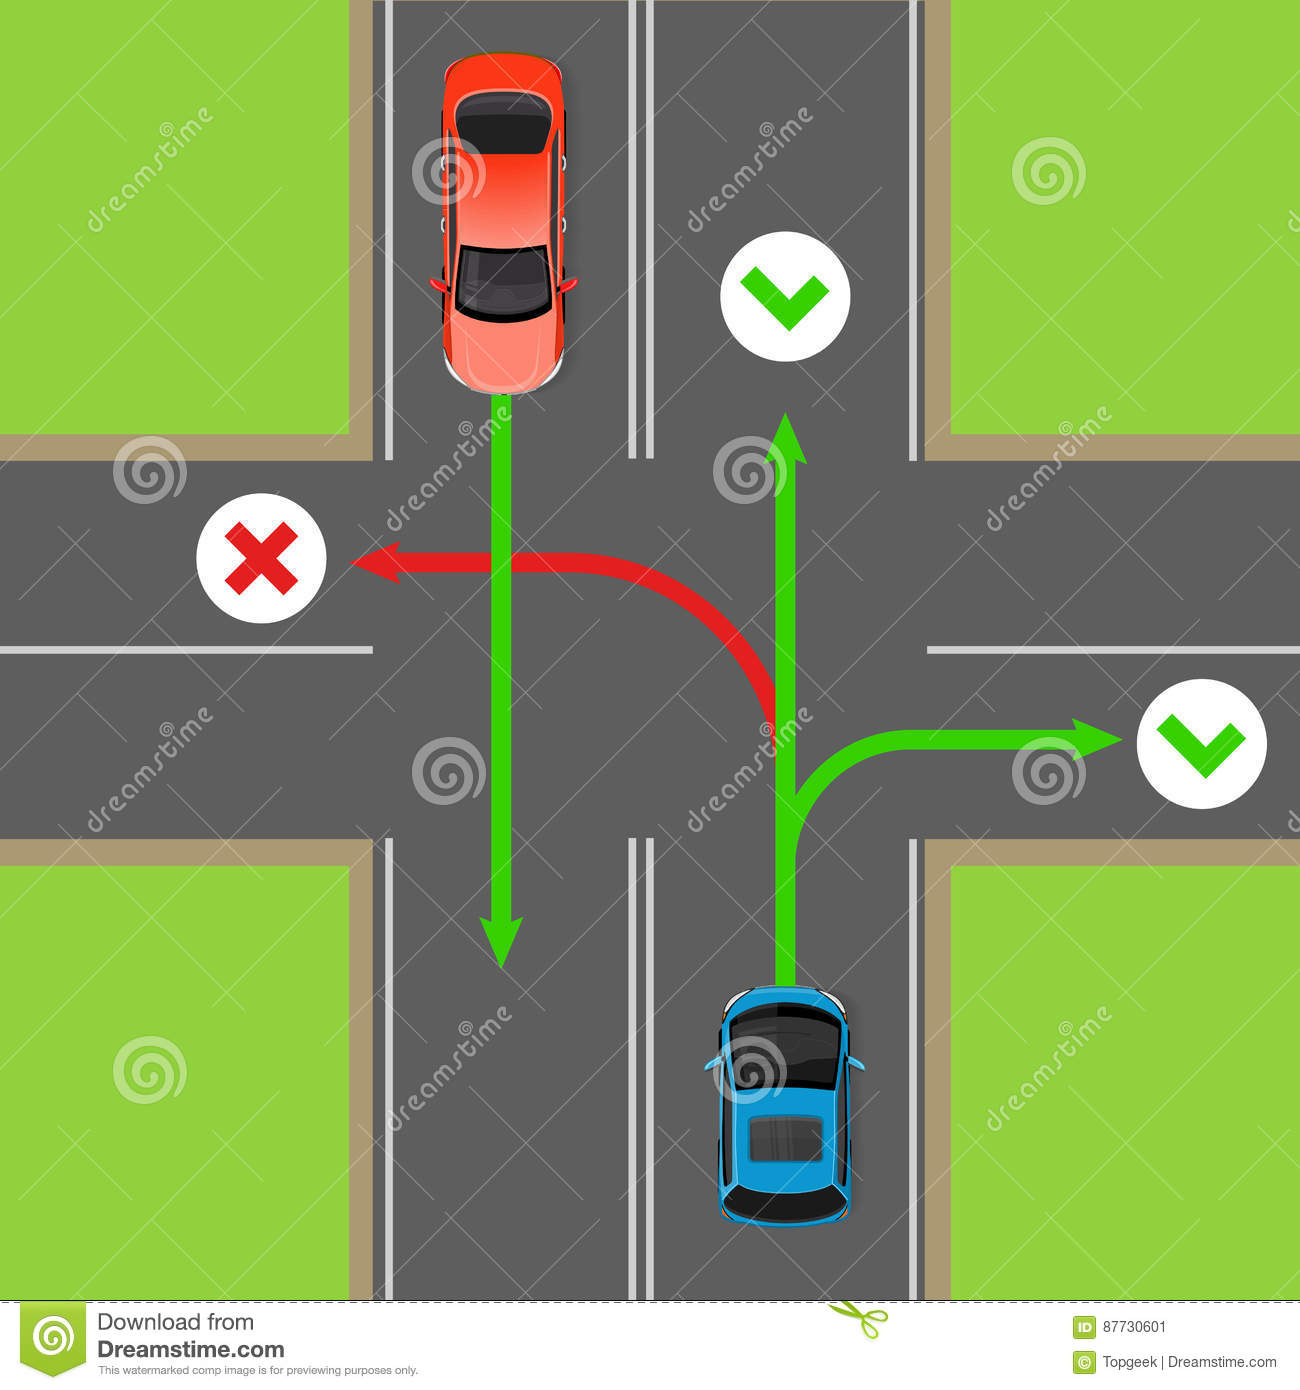 hight resolution of road rule violation on top view diagram traffic offences concept danger of car accident driving theory lesson for driving courses test